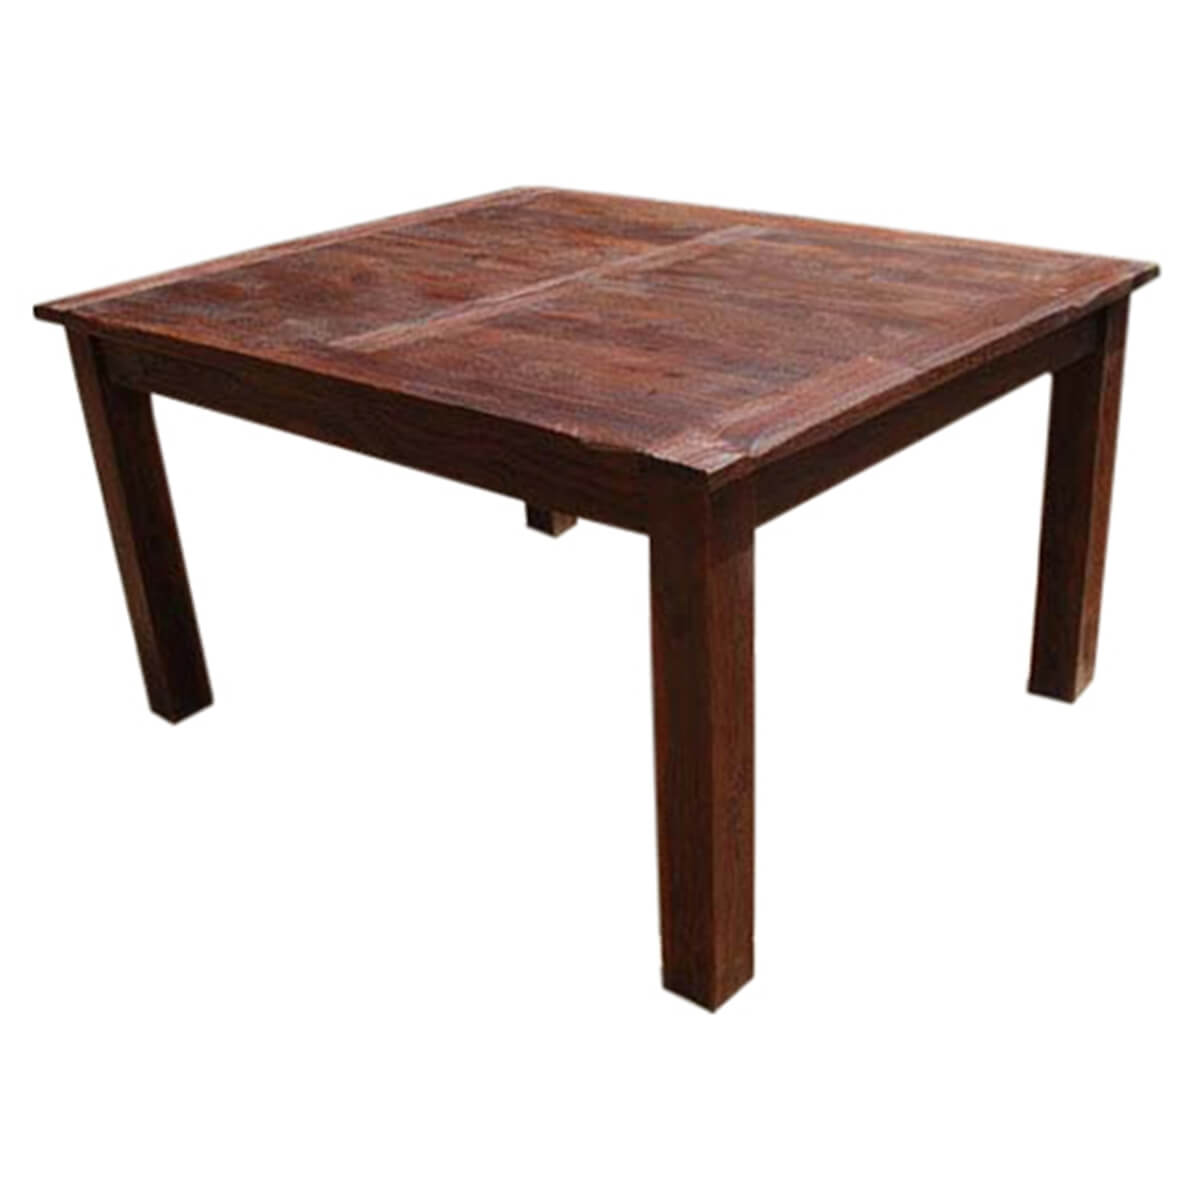 Rustic Solid Wood Appalachian Dining Room Table & Chair Set